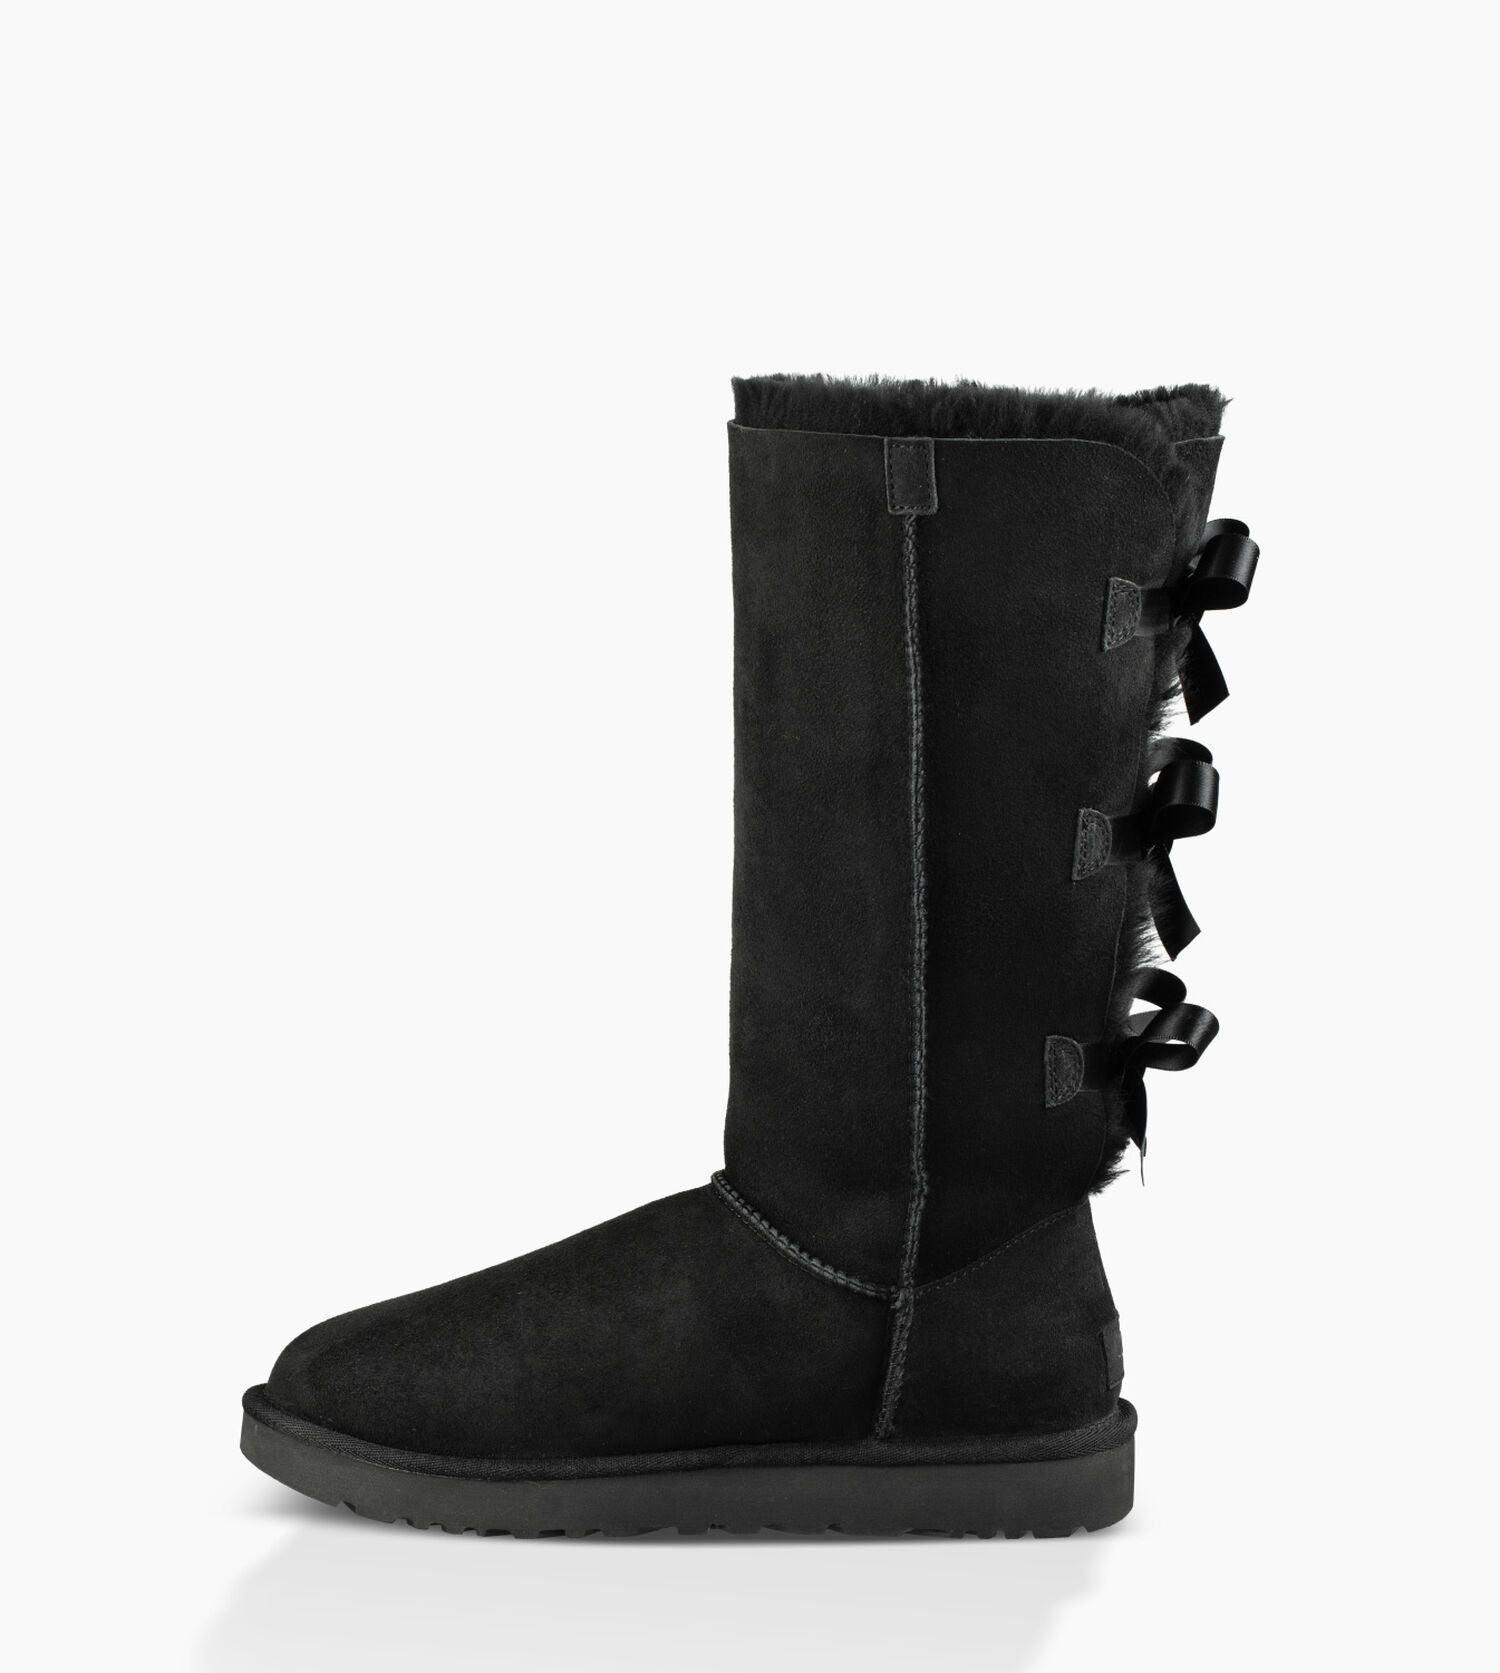 black bailey bow uggs size 10